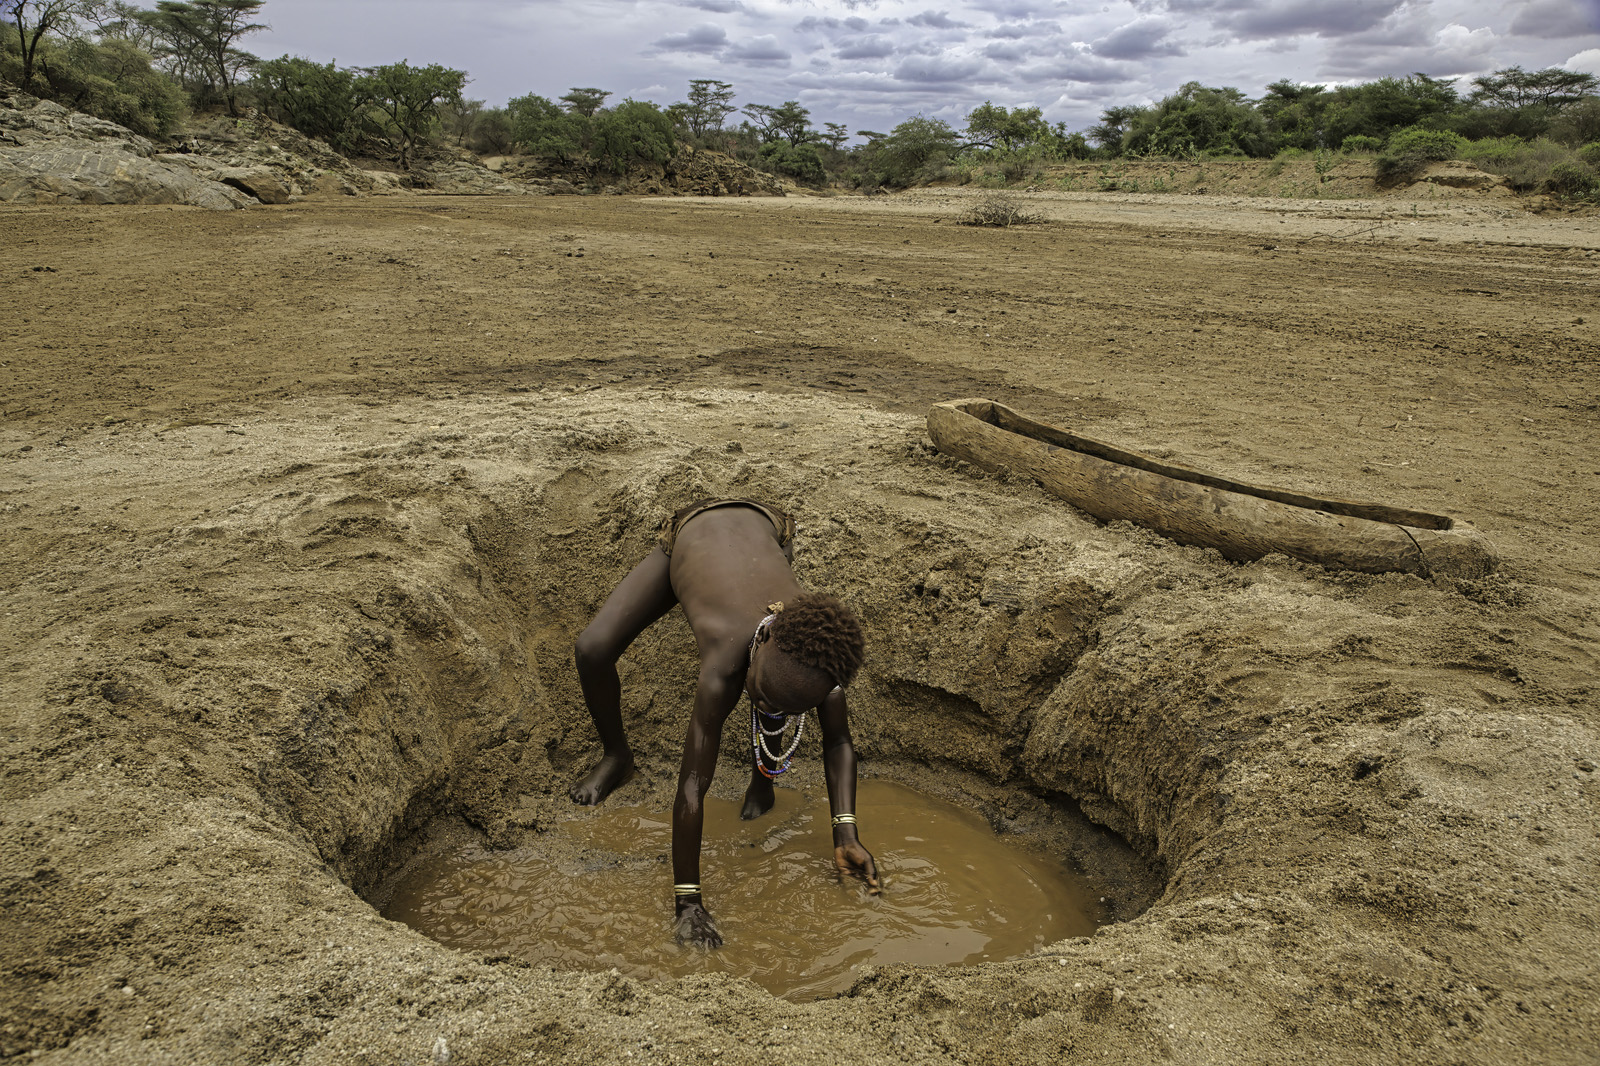 Drought in The Omo River Valley